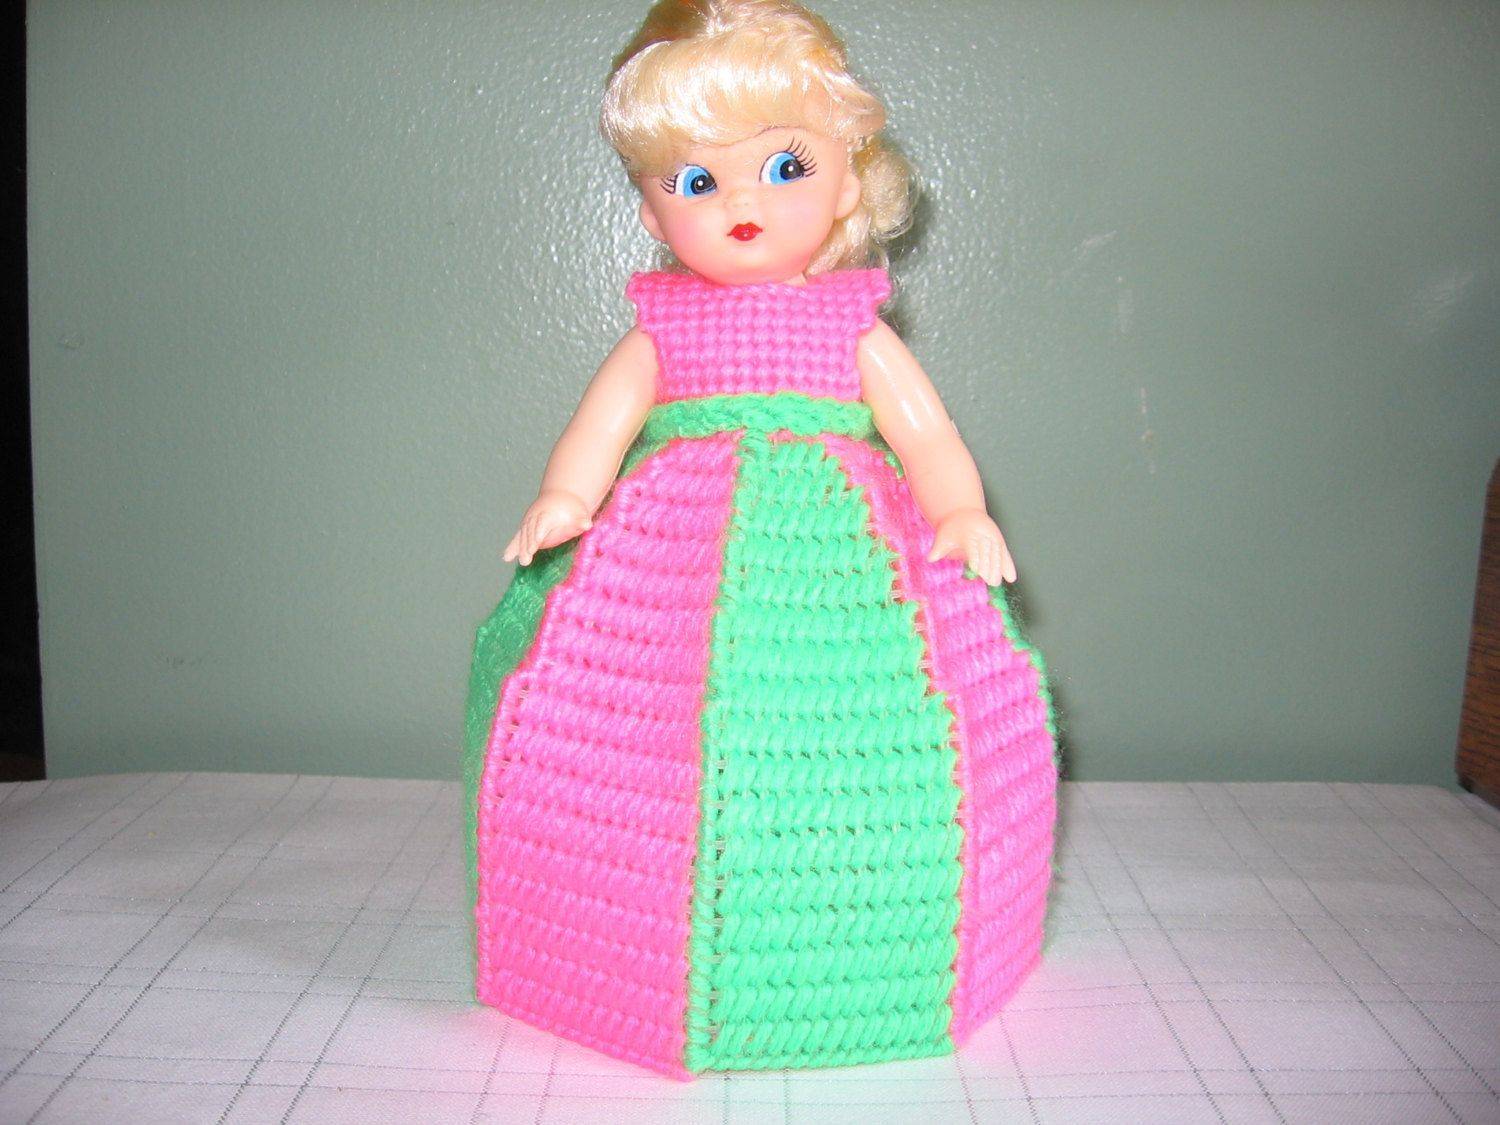 Hot Pink/Lime Green Collectible Doll - use for decoration or Air Freshner!! - My Best Seller!!! by CreationsbyAMJ on Etsy #airfreshnerdolls Hot Pink/Lime Green Collectible Doll - use for decoration or Air Freshner!! - My Best Seller!!! by CreationsbyAMJ on Etsy #airfreshnerdolls